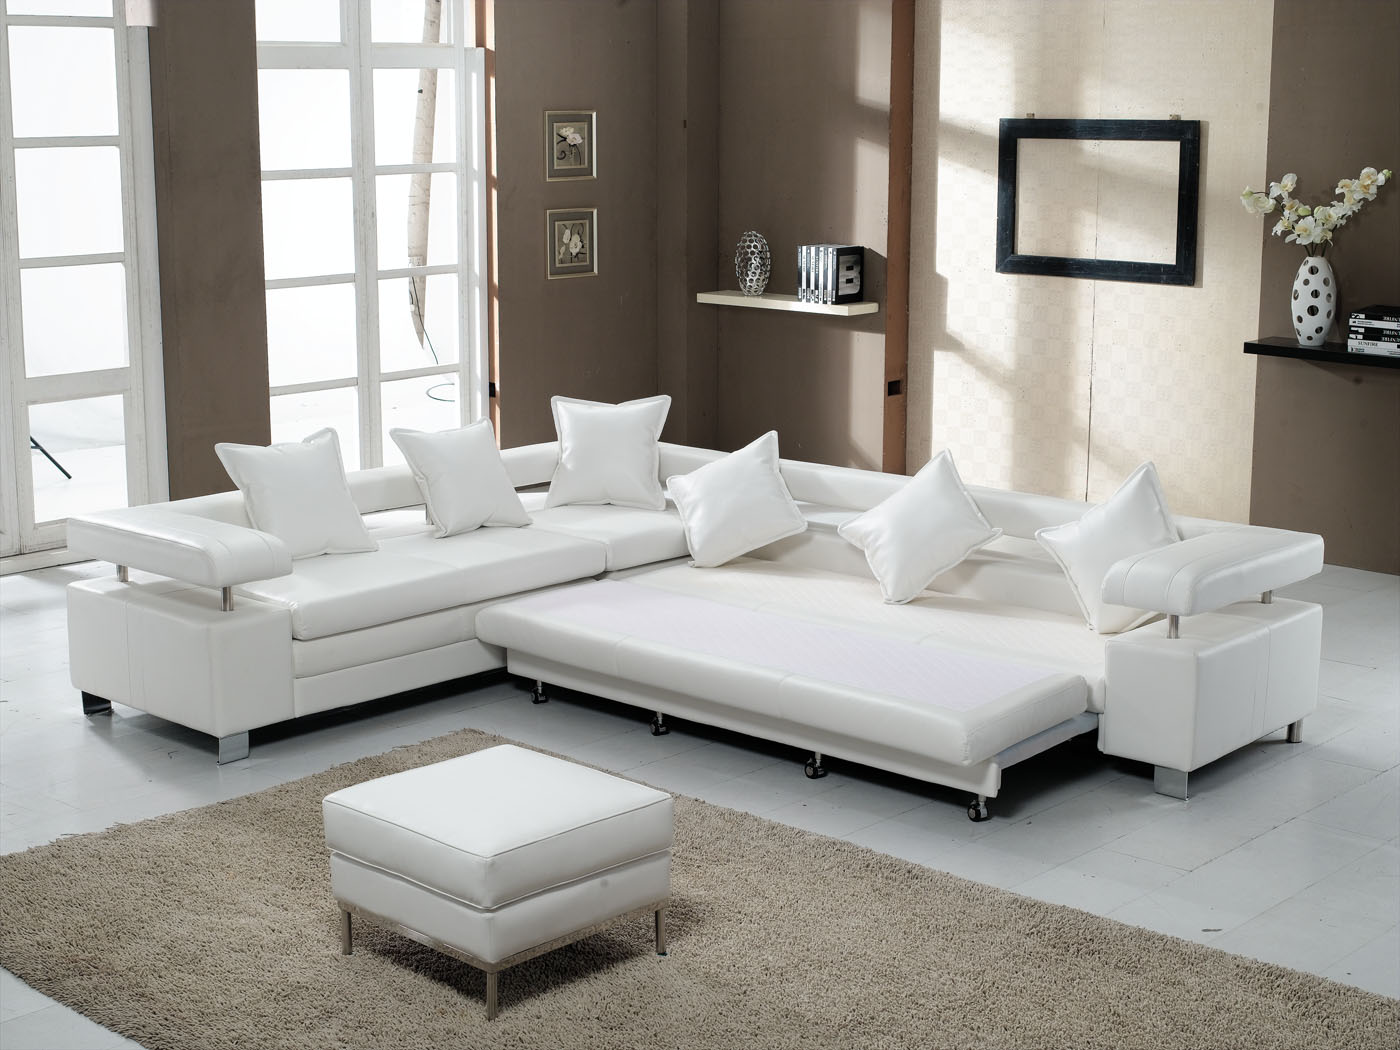 Superb Contemporary Sleeper Sofa | Royals Courage